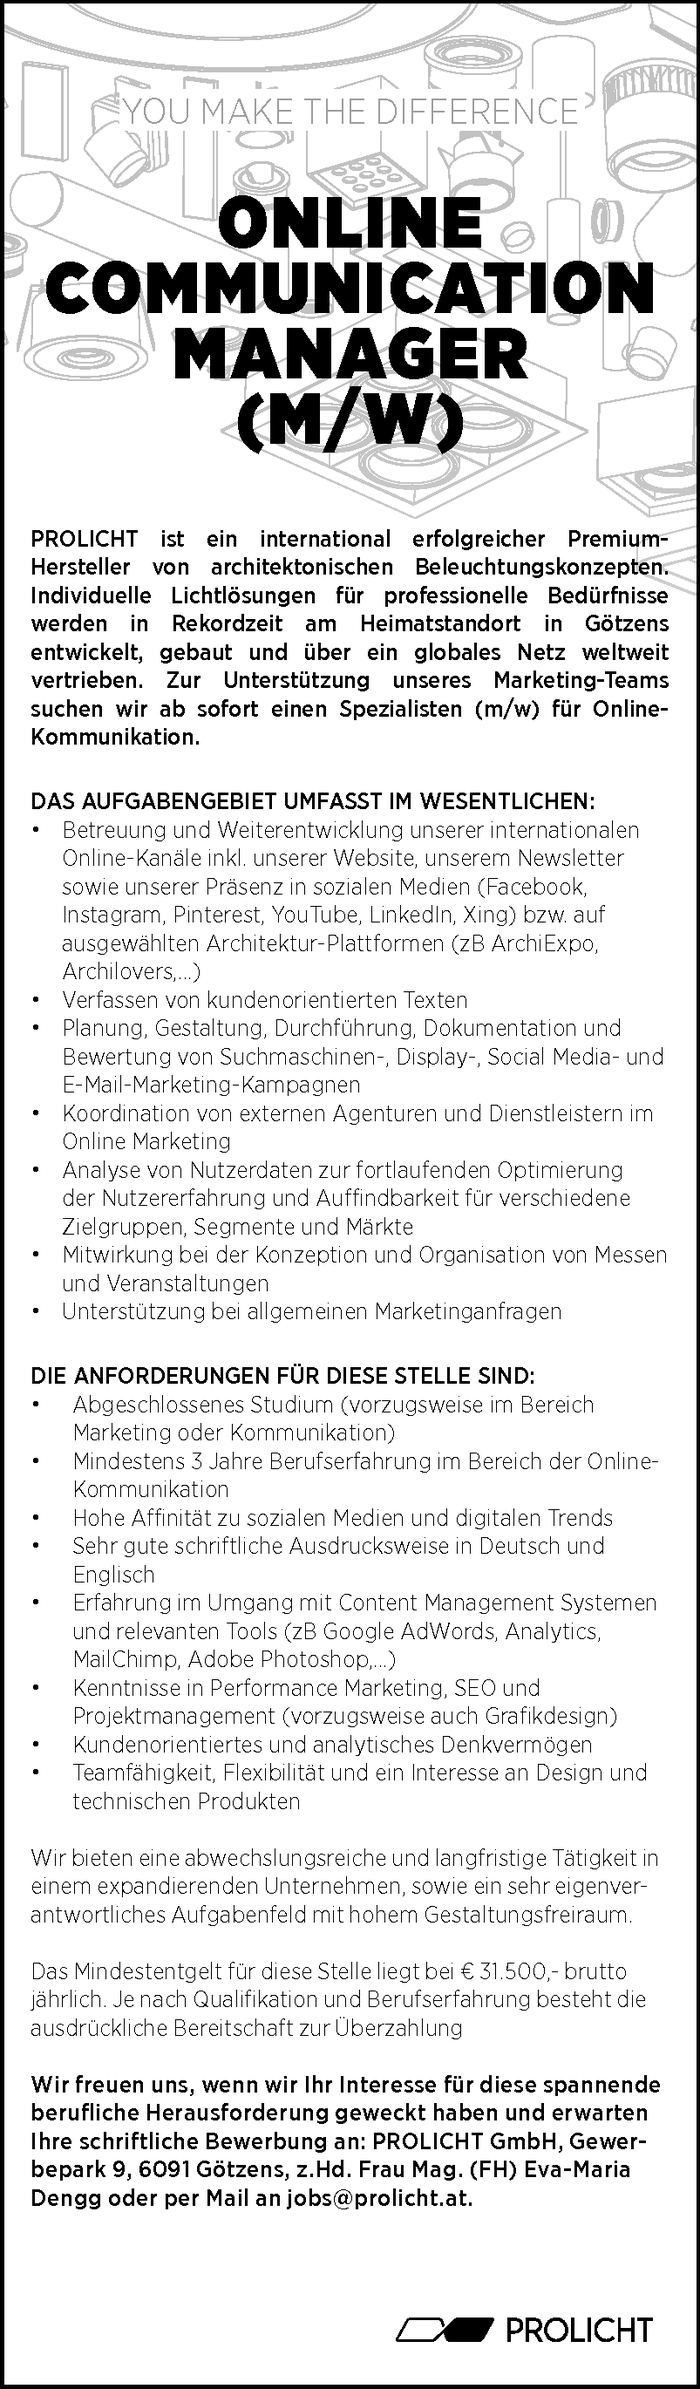 Online Communication Manager (m/w)